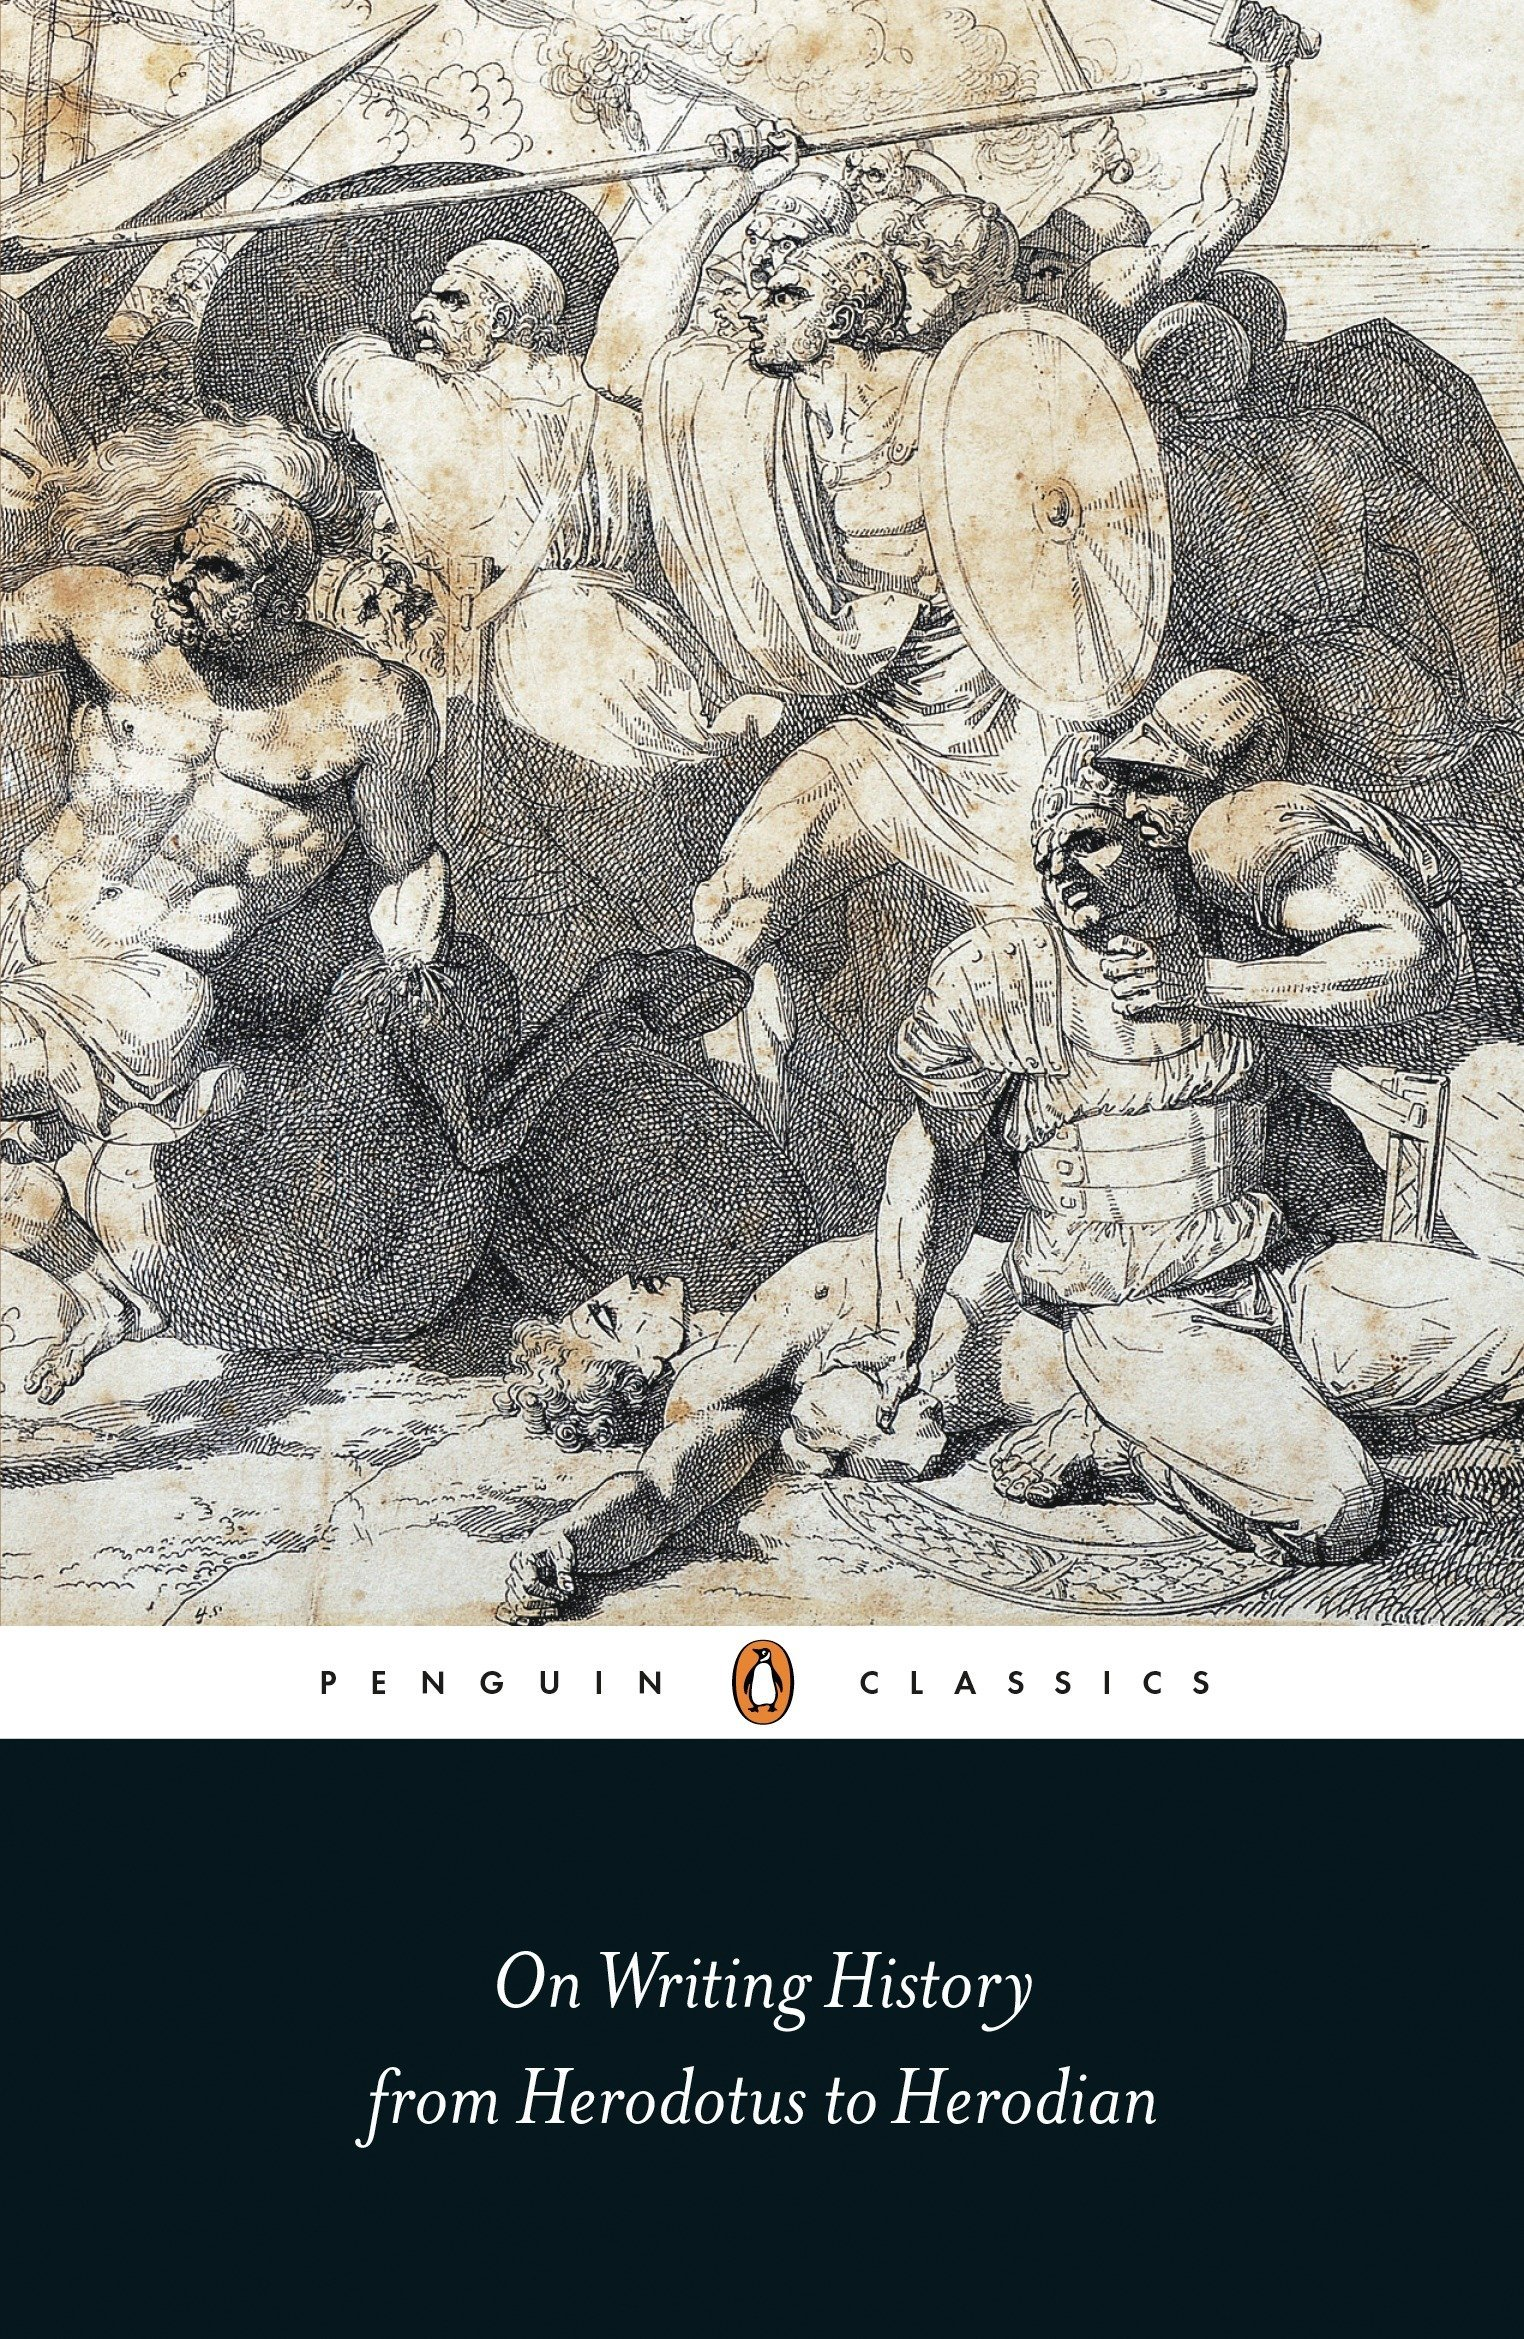 Read Online On Writing History from Herodotus to Herodian (Penguin Classics) pdf